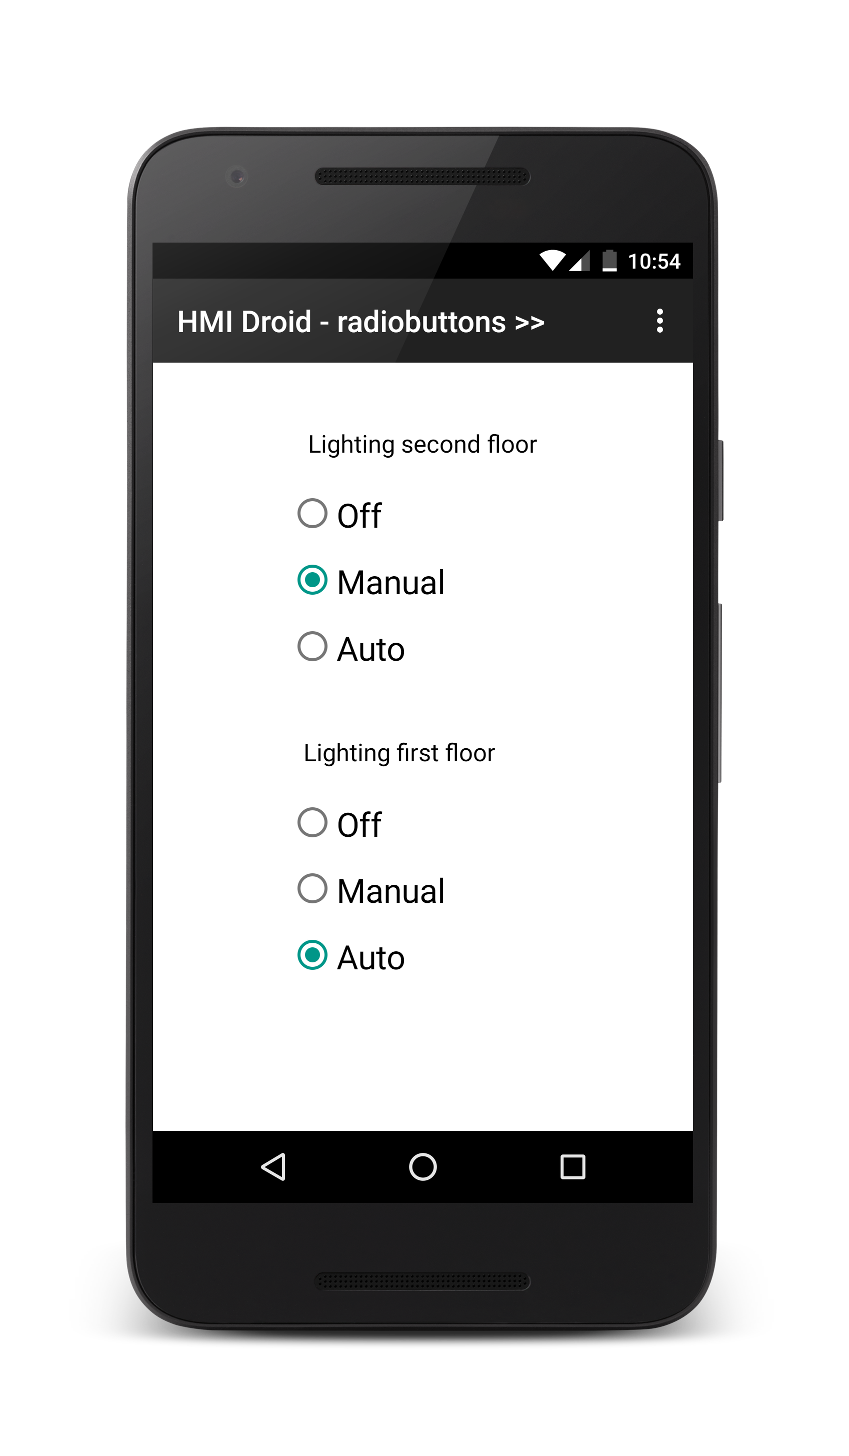 HMI Droid radiobutton